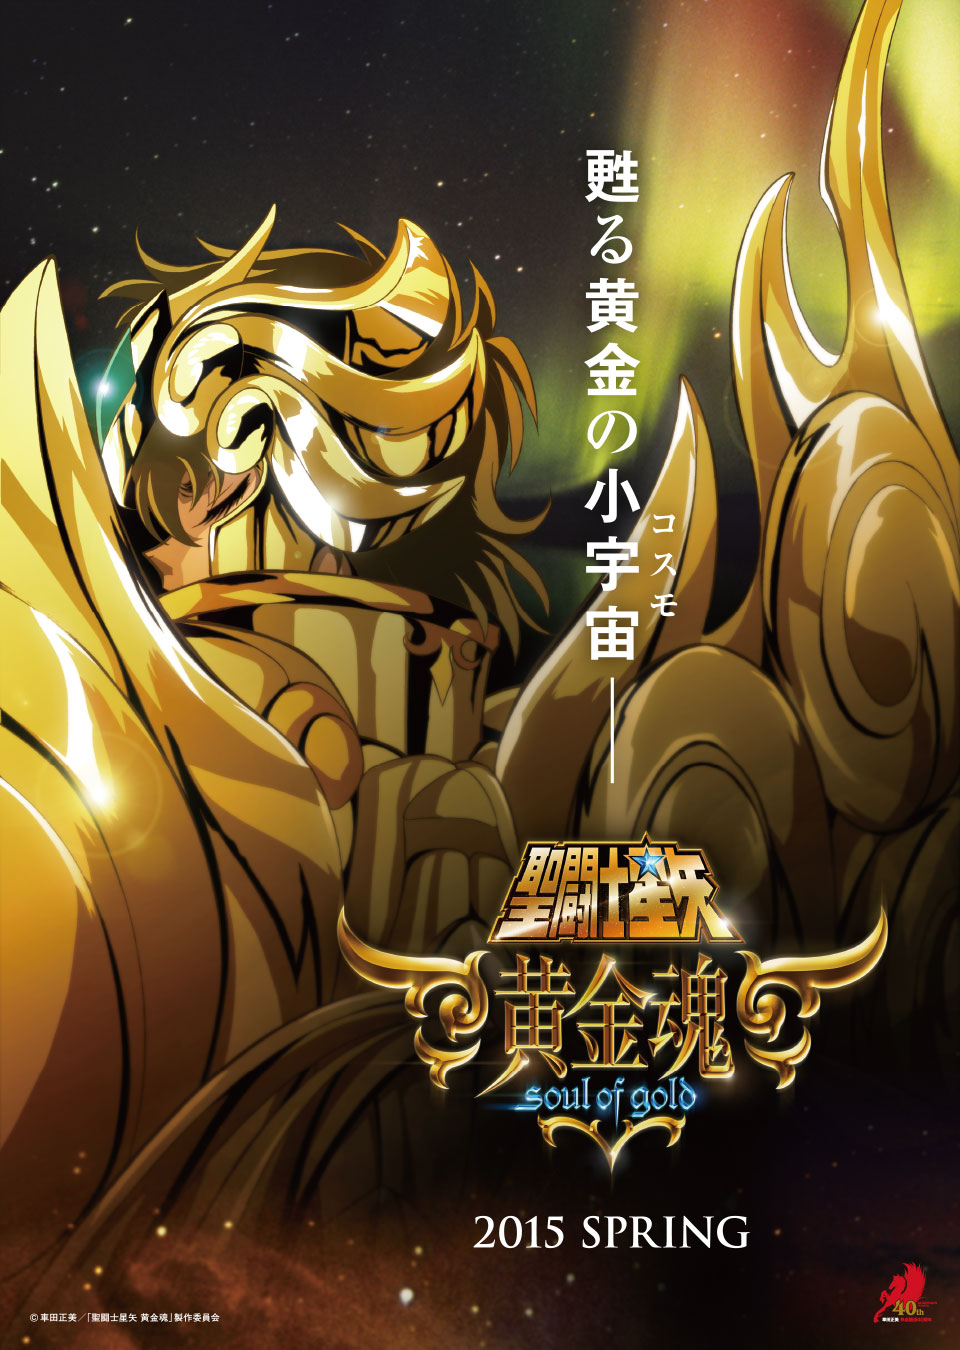 Saint Seiya Soul of Gold anime 2015